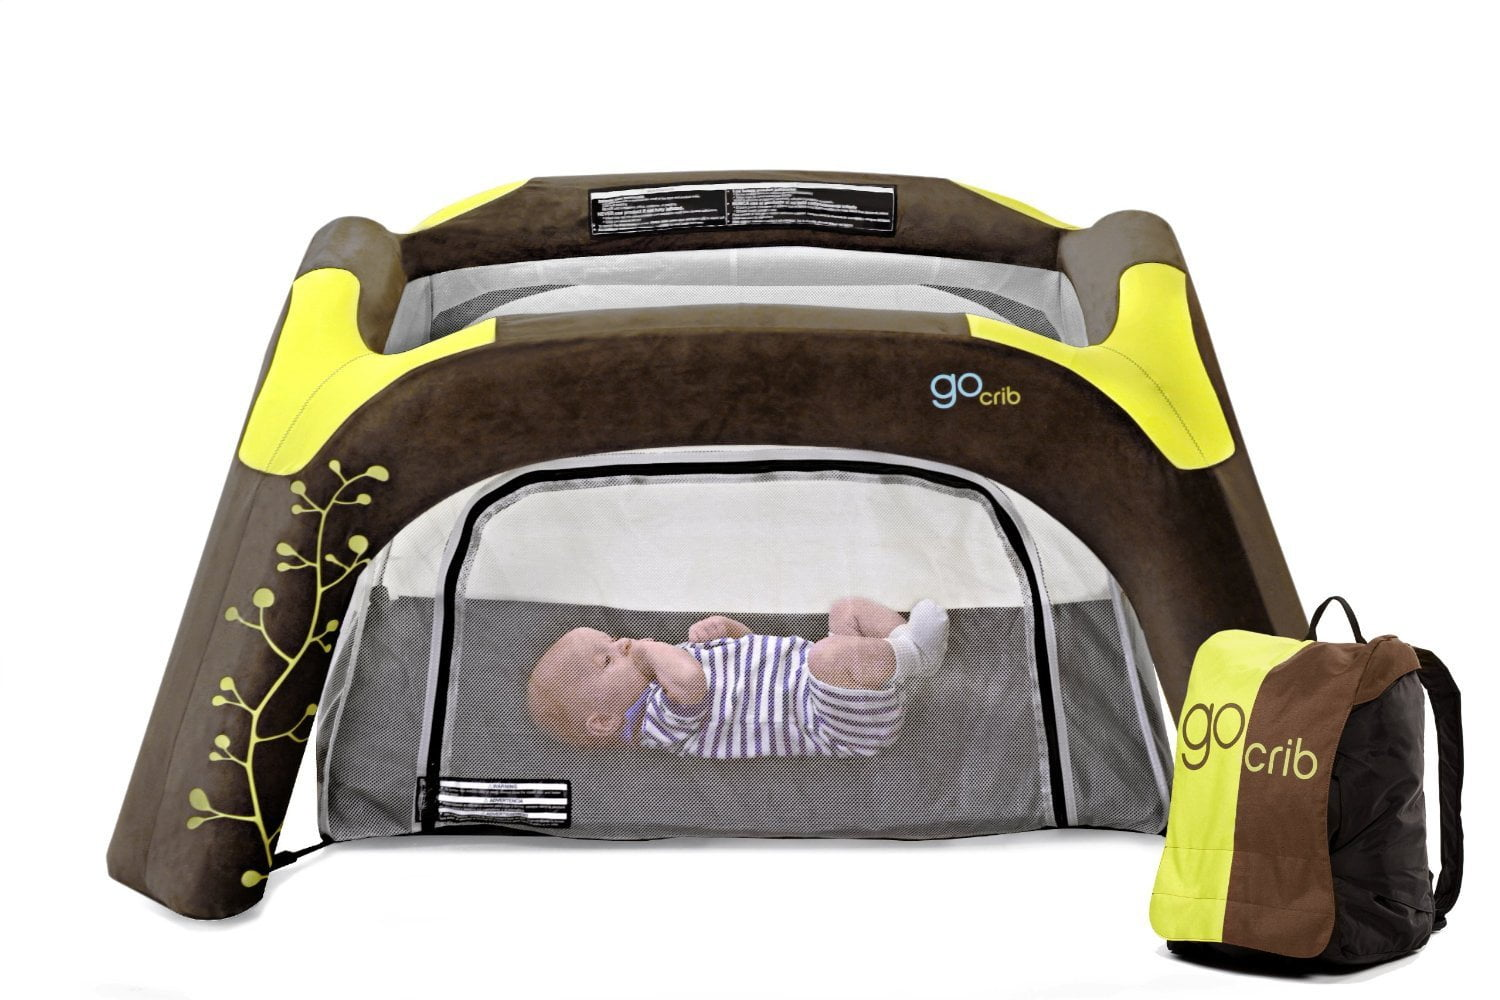 Gocrib adventure crib for sale - Gocrib Adventure Crib Travel Crib Gocrib Portable Baby Bed